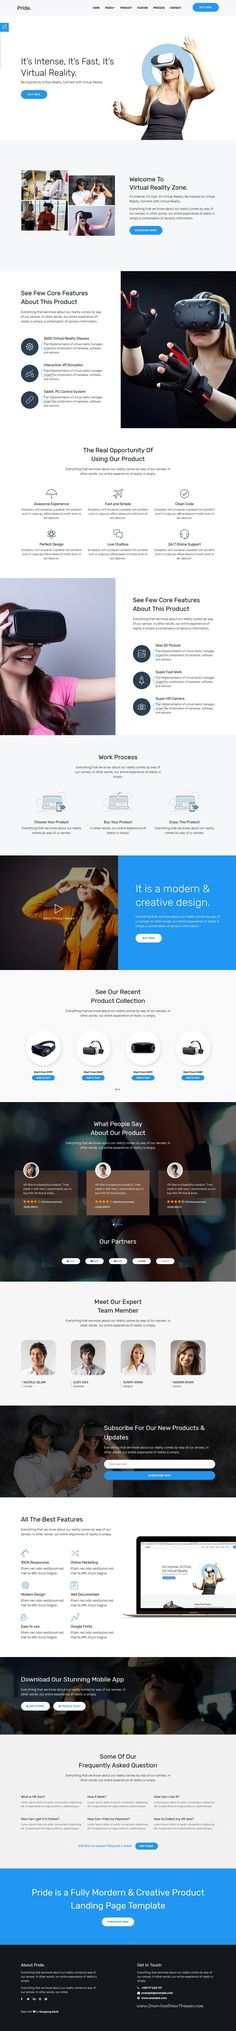 Pride is clean and modern design responsive #bootstrap template for creative #product landing page #website with 10 different homepage layouts to live preview & download click on Visit